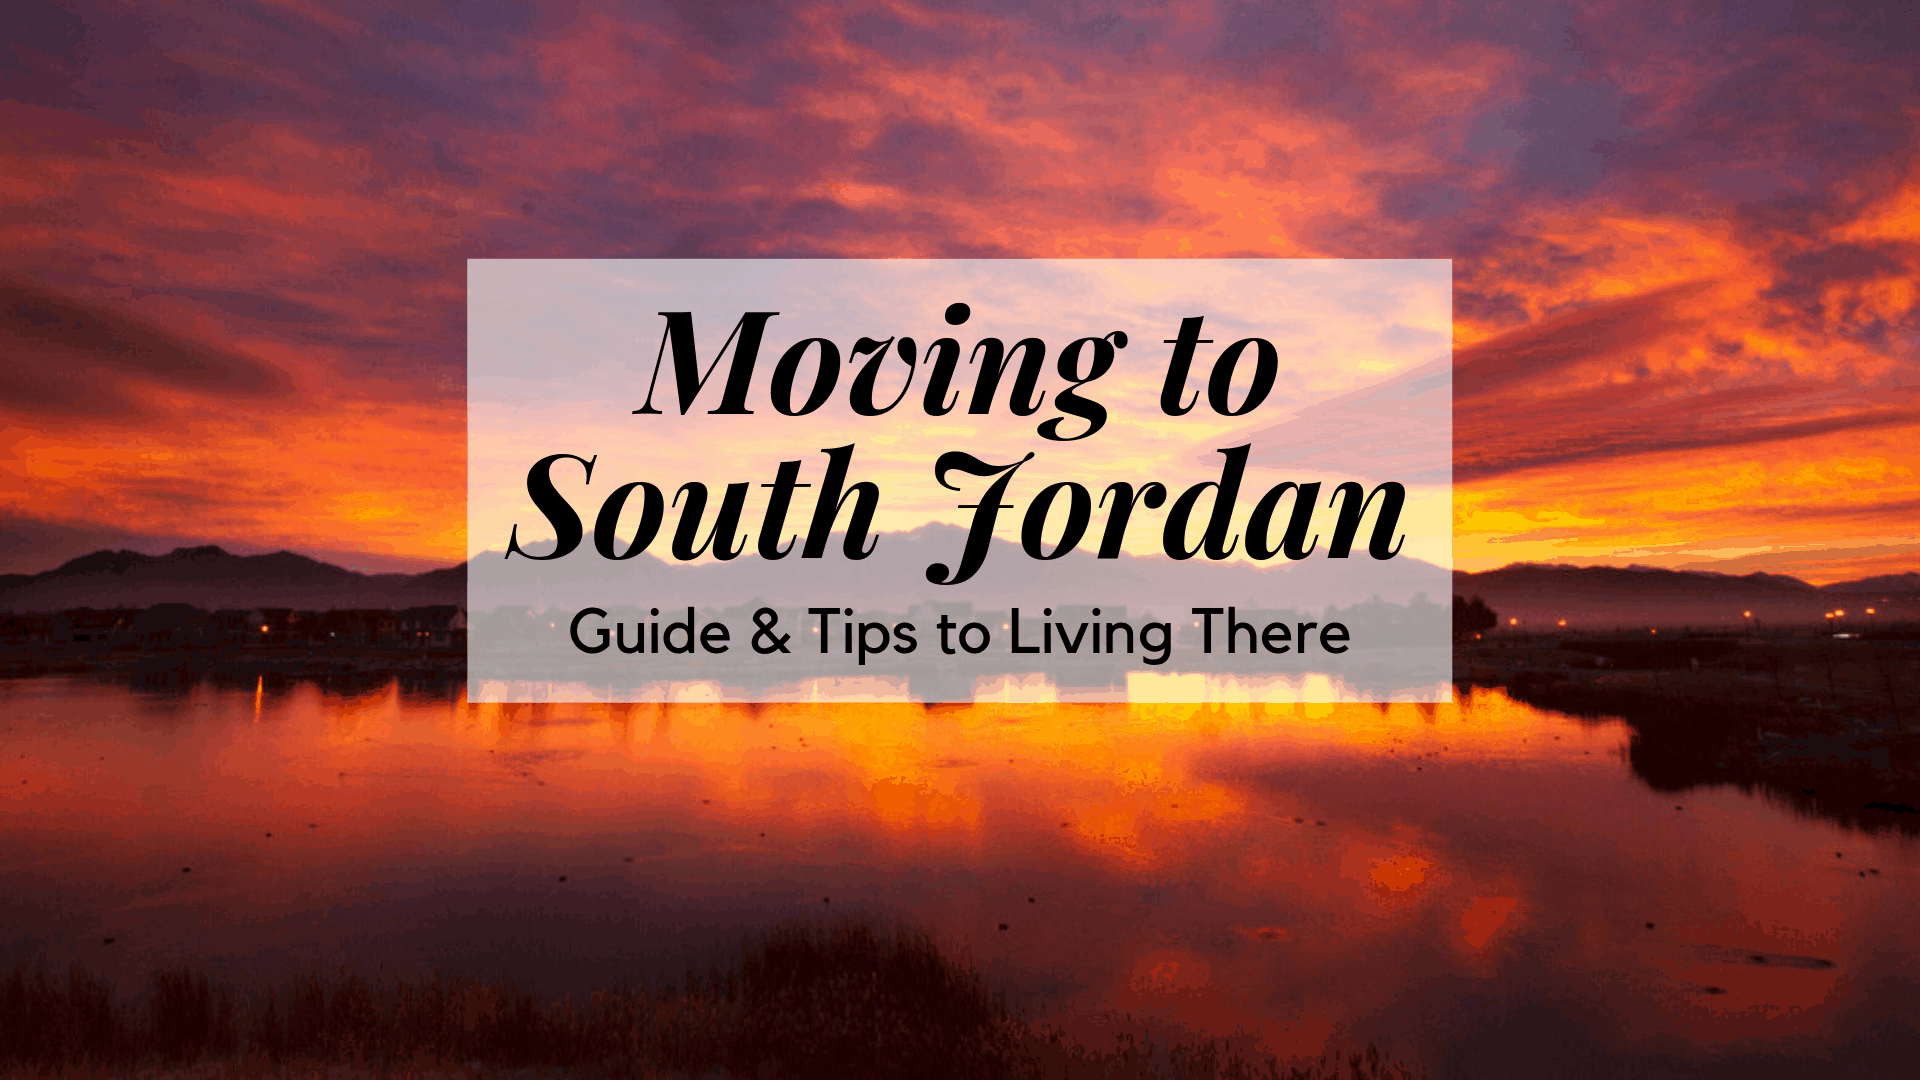 Moving to South Jordan - Guide & Tips to Living There